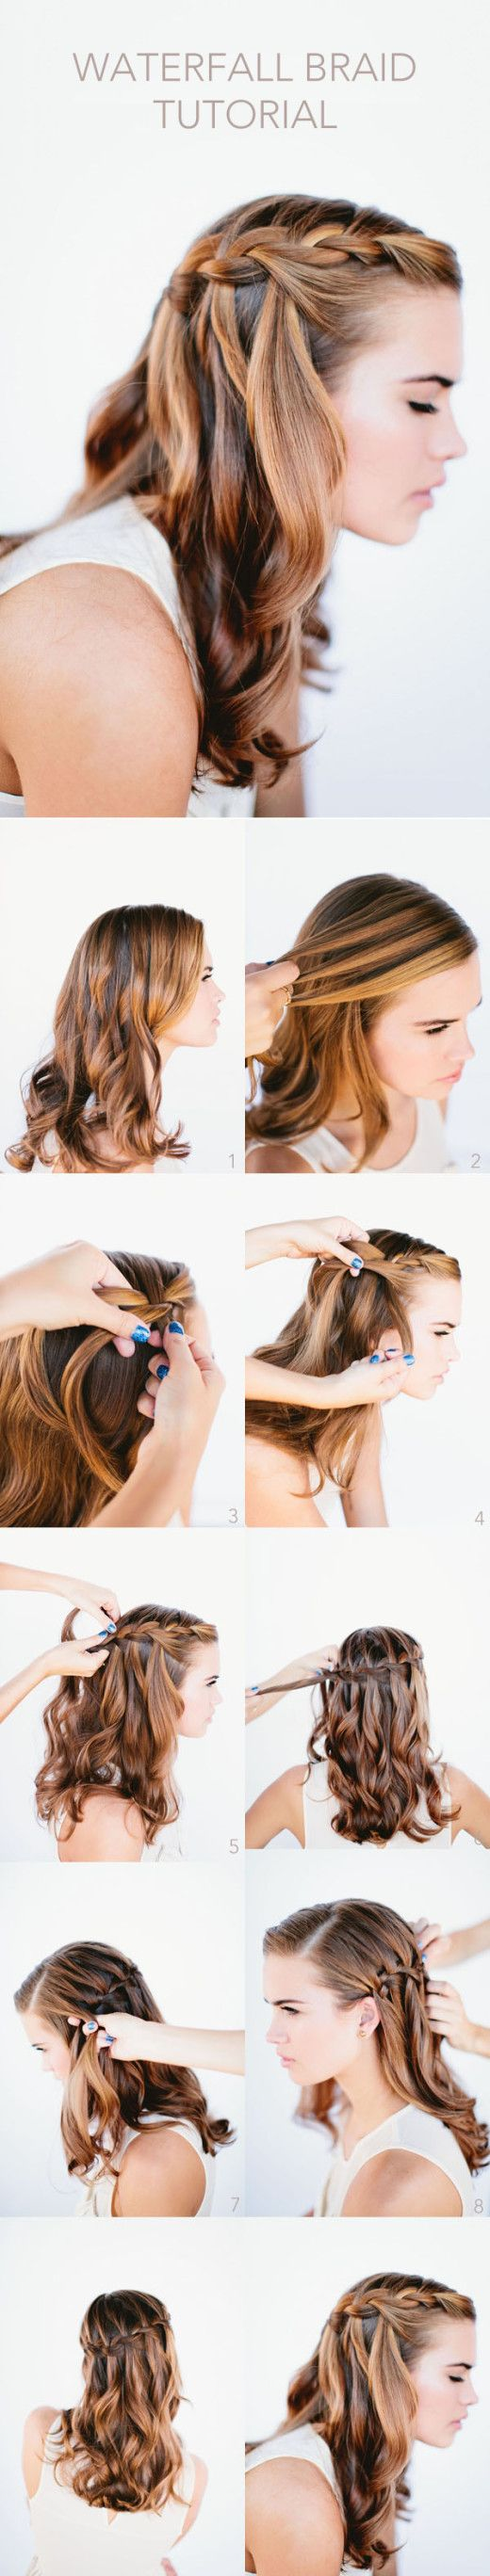 Waterfall Braid Wedding Hairstyles for Long Hair -- looks so simple....